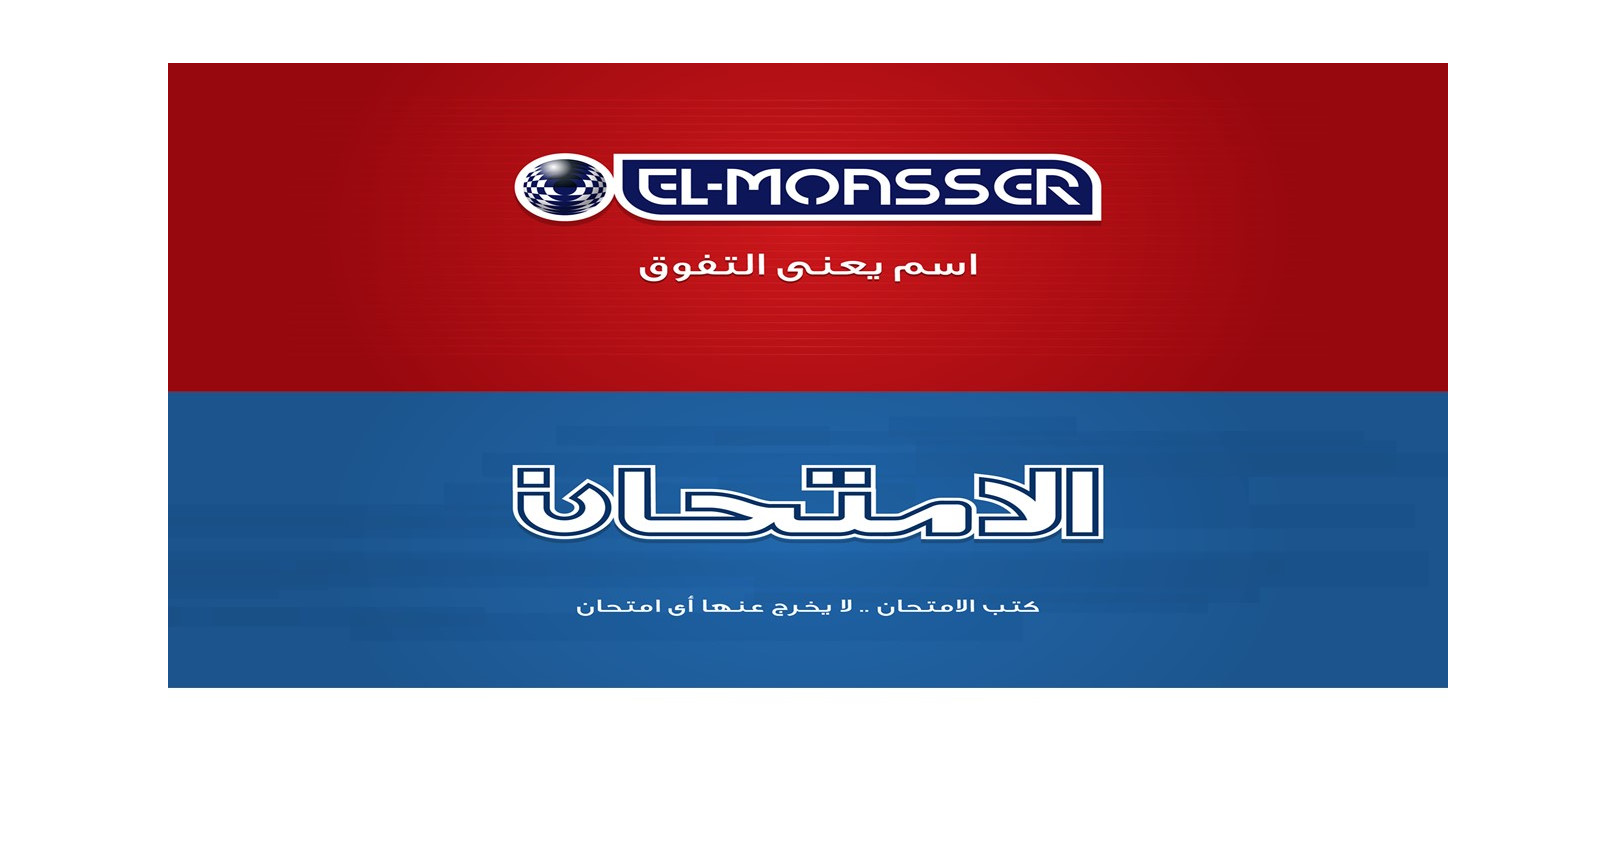 صورة Job: Activation Area Supervisor(Monufia) at El-Moasser Books in Monufya, Egypt